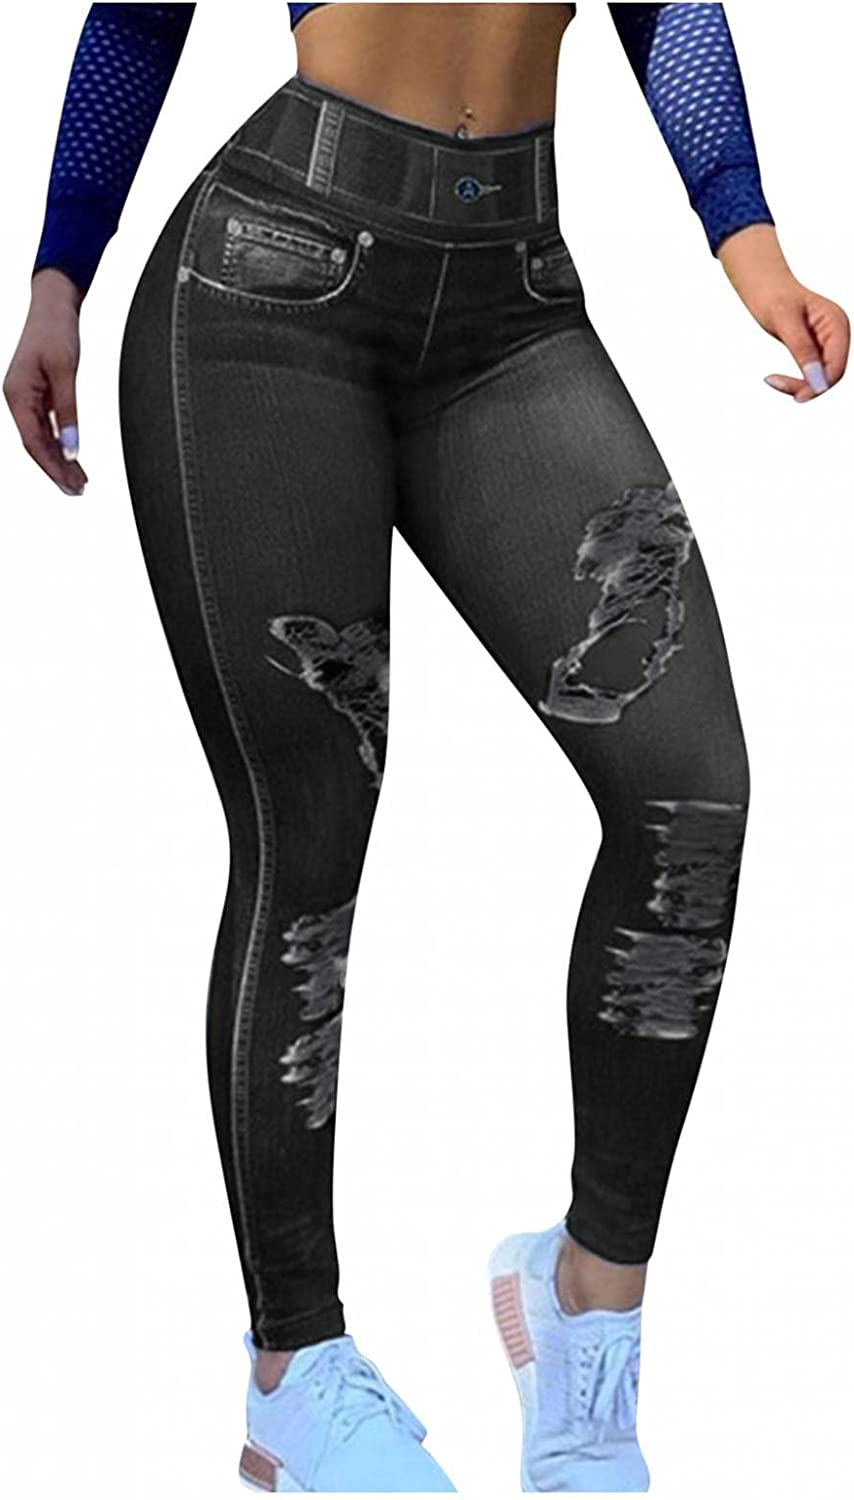 WUAI-Women Jeans Look Stretchy Jeggings High Waist Workout Yoga Leggins with Pockets Tummy Control Skinny Jeans